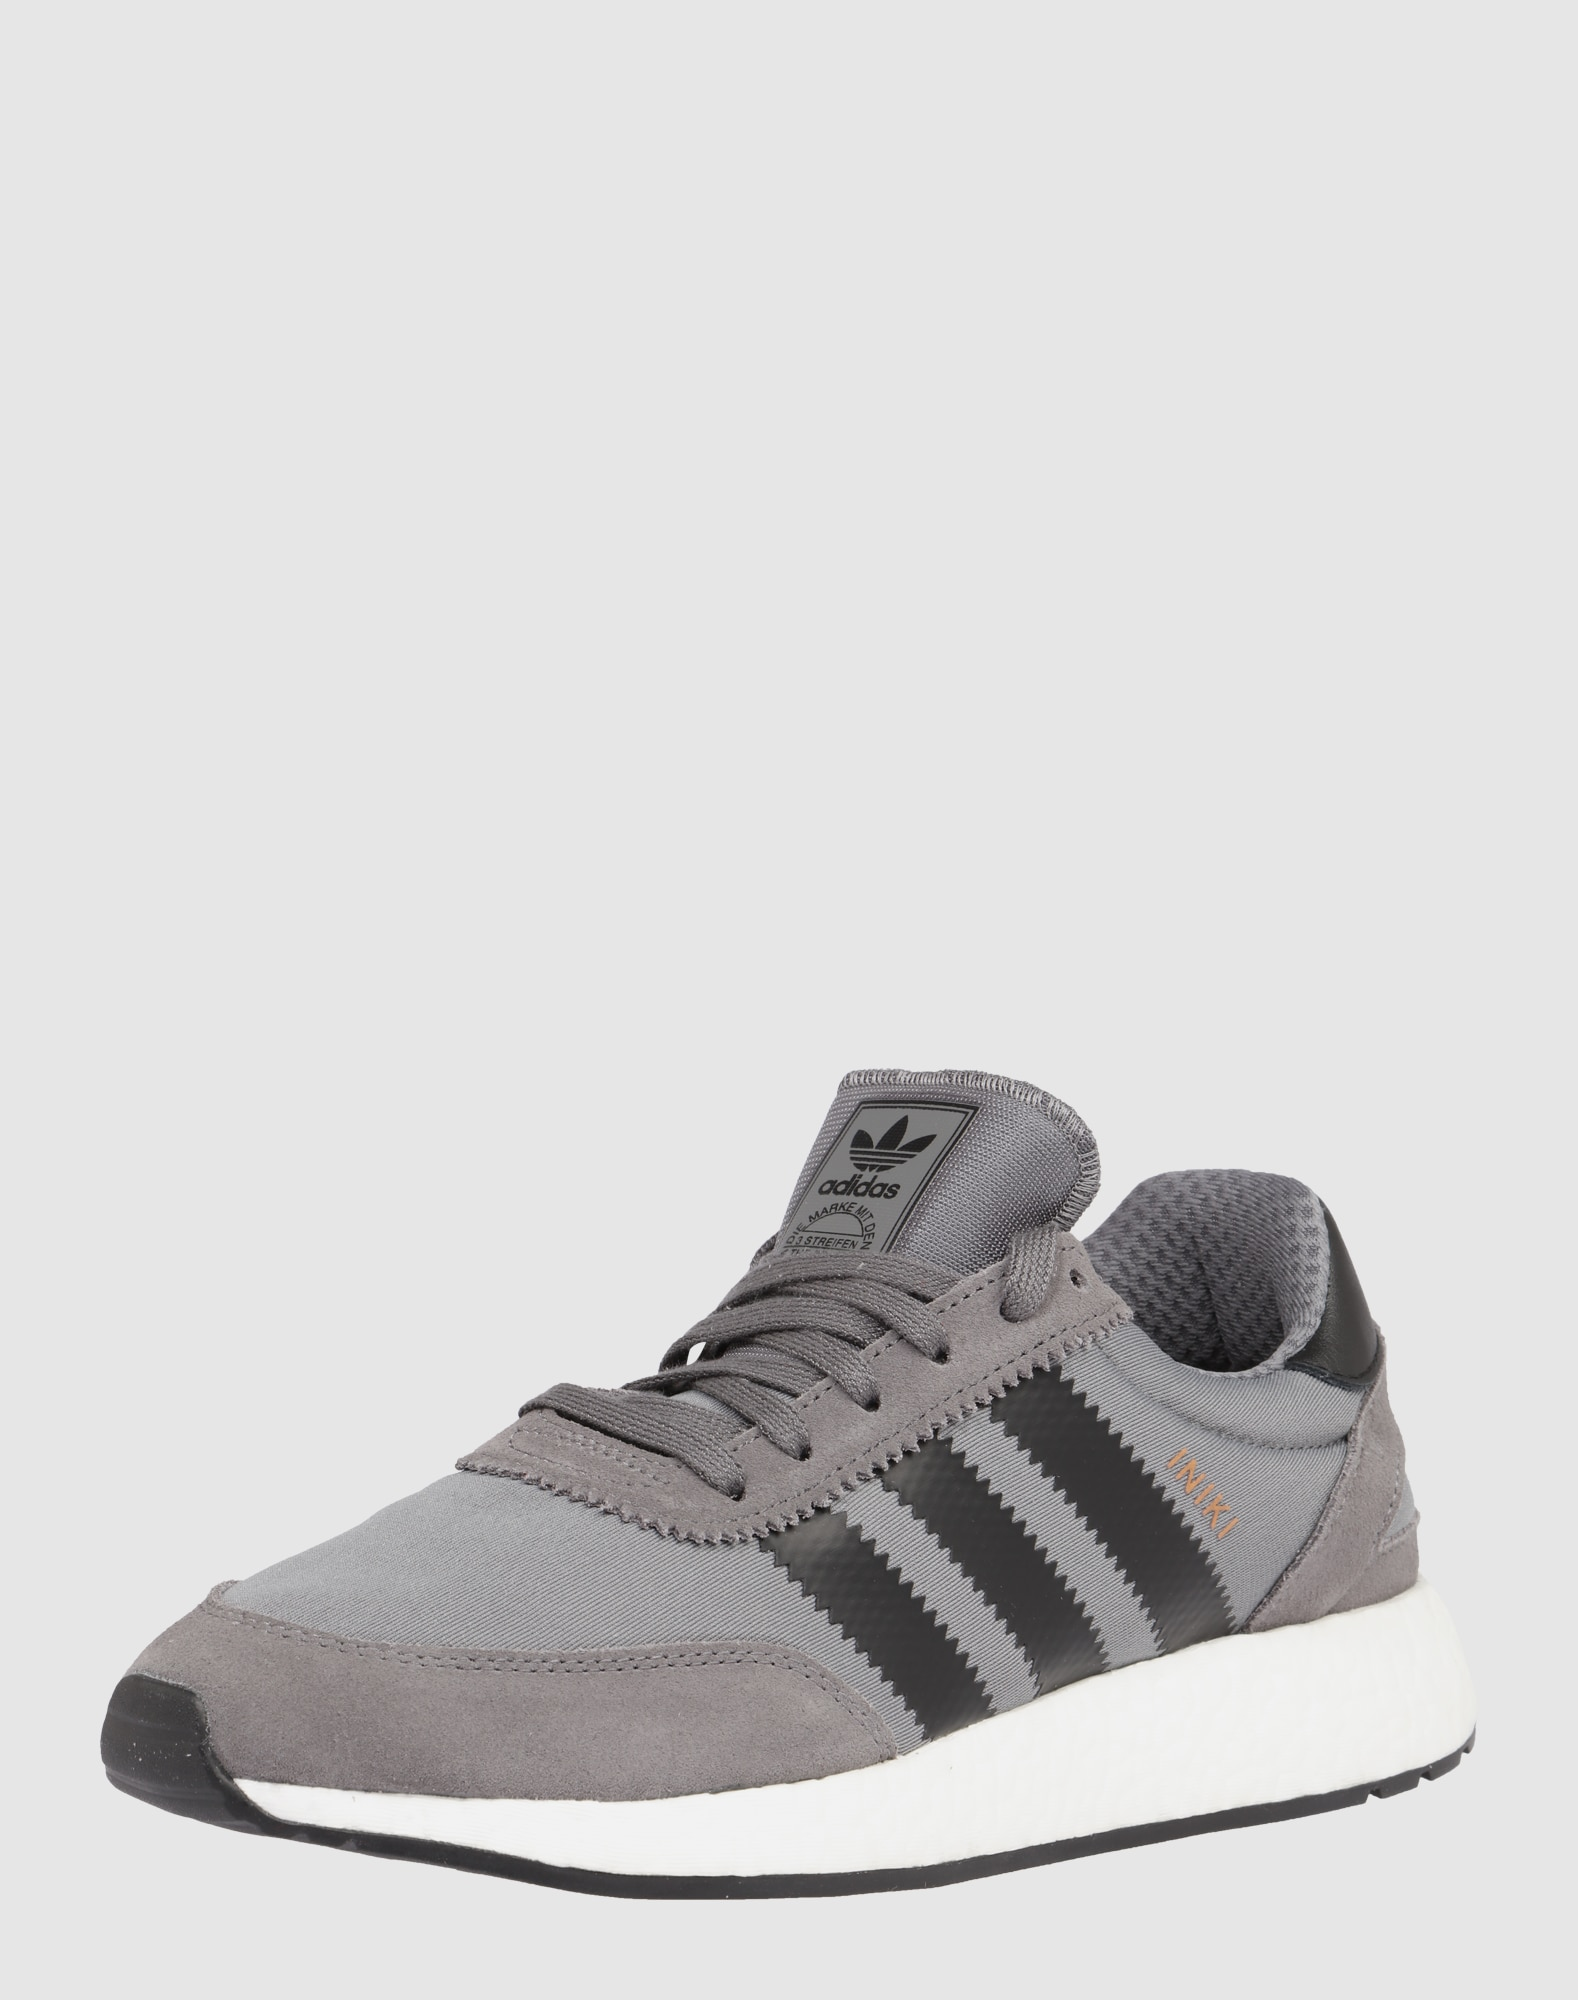 adidas originals sneakers 39 iniki 39 in grau about you. Black Bedroom Furniture Sets. Home Design Ideas